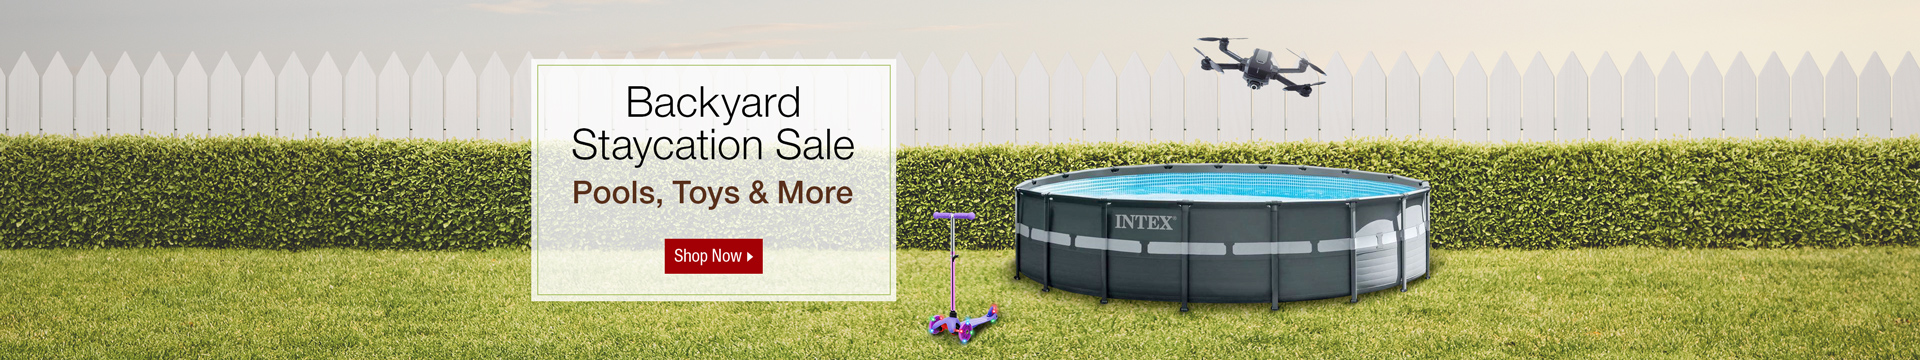 Backyard Staycation sale